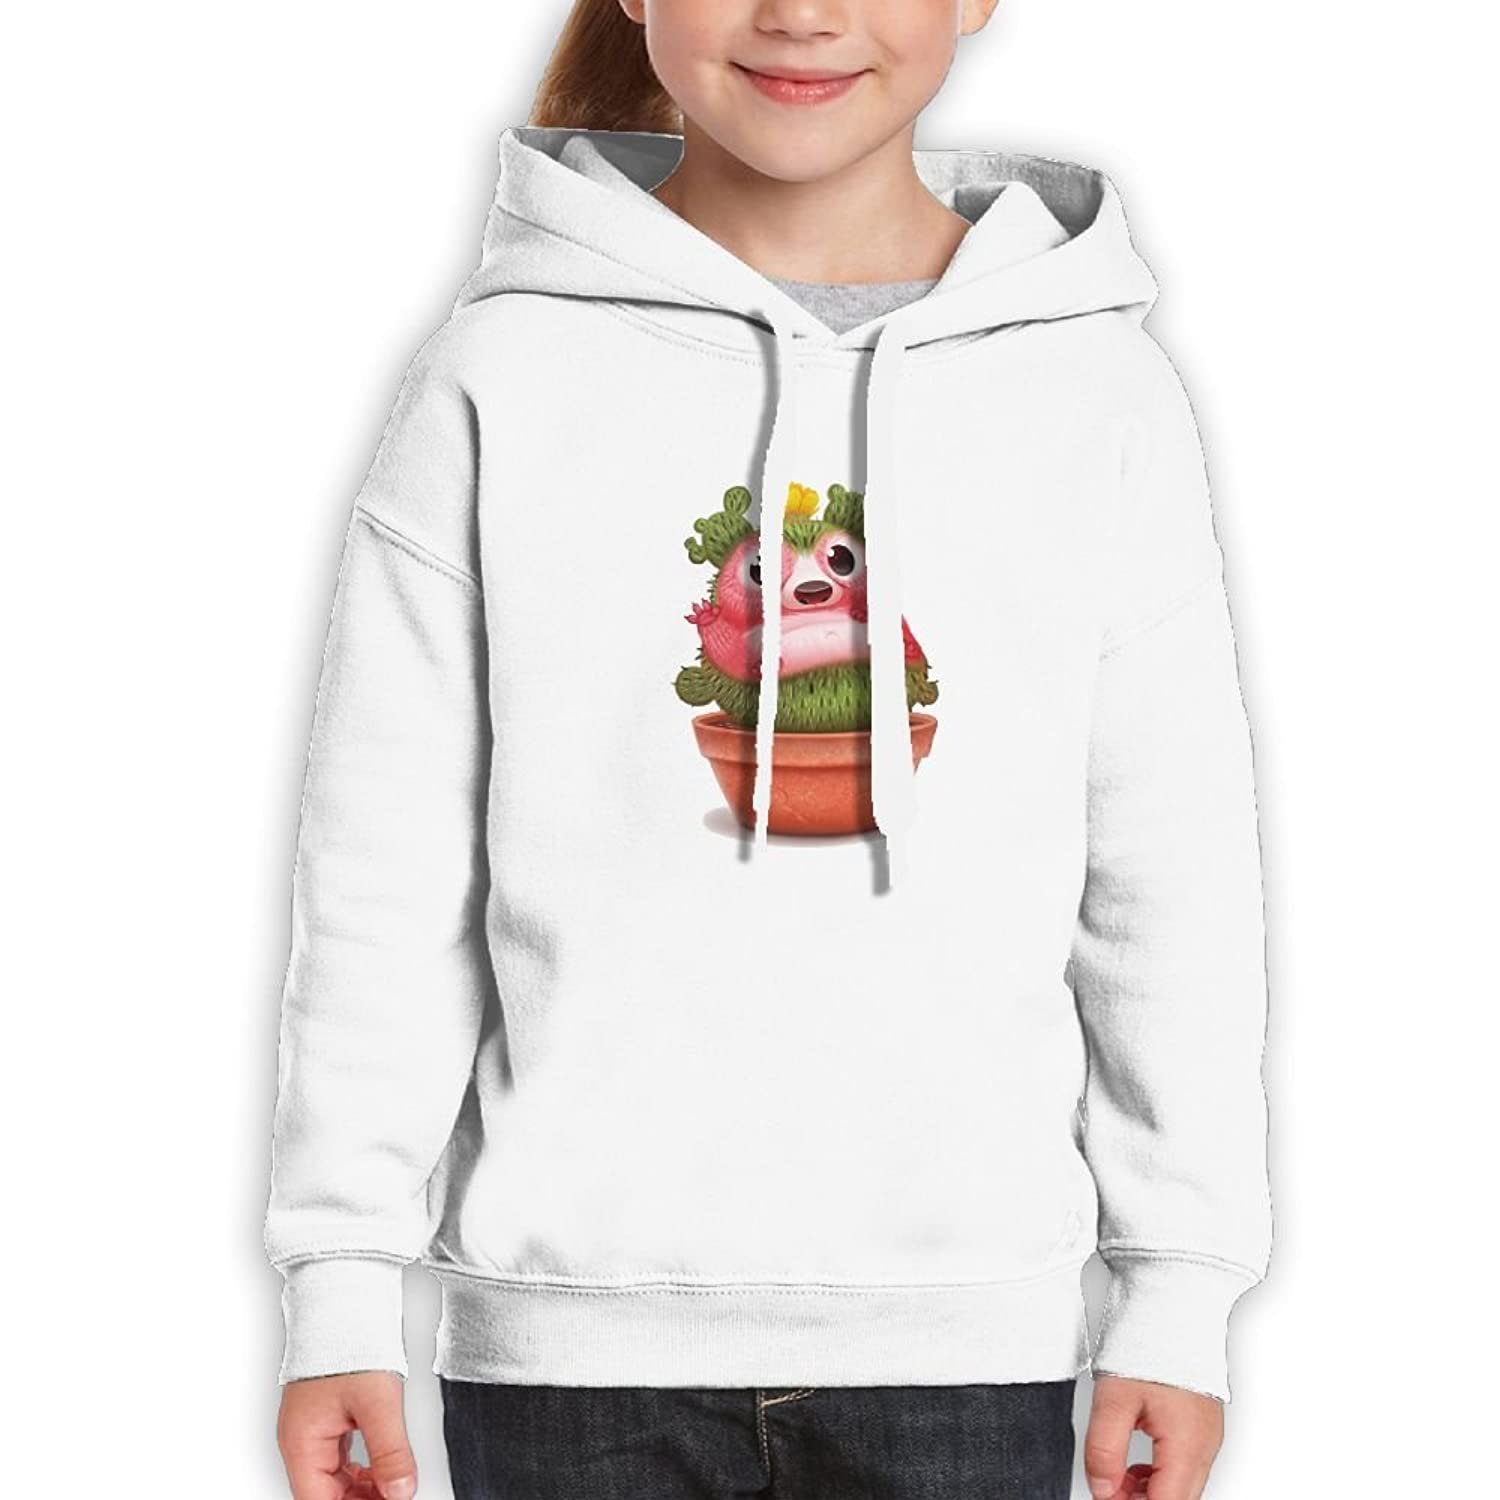 LENSITON Prickly Pear Pattern Unisex Teenager Hoodies With Cap For Boys and Girls Pullover Sweatshirts